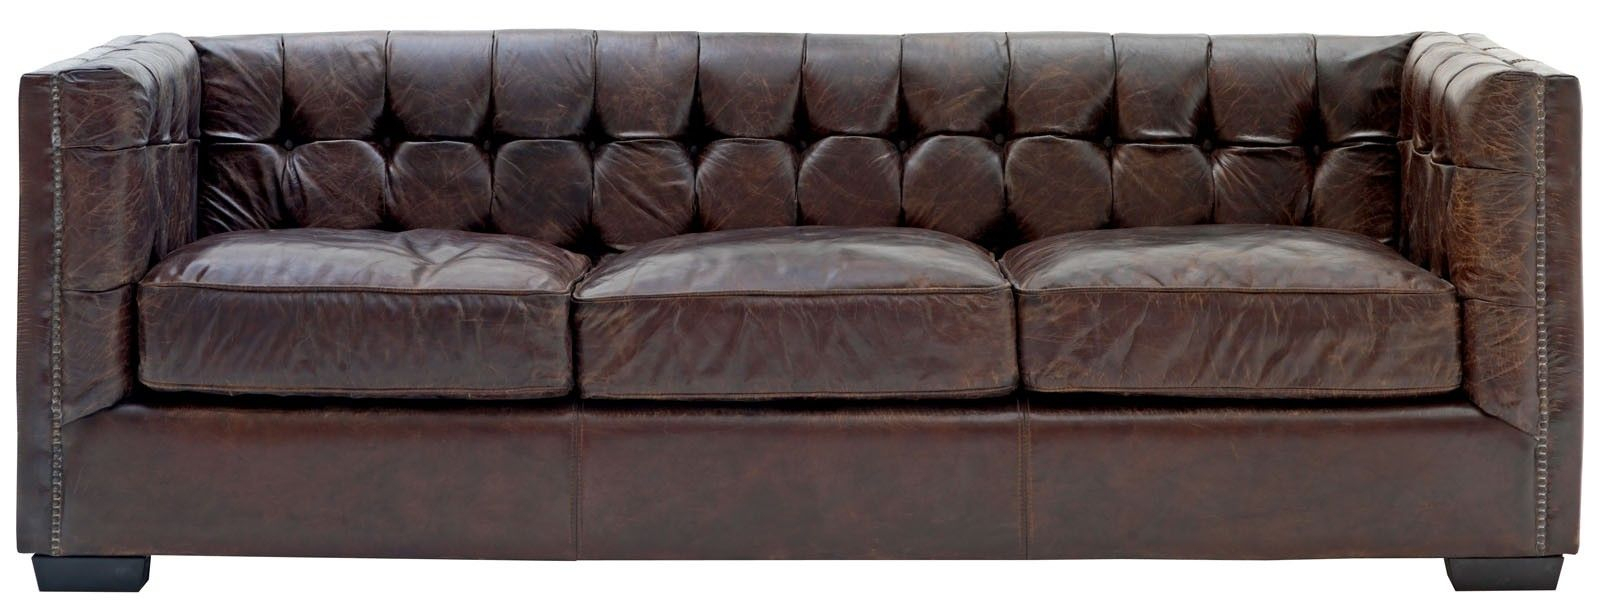 Armstrong Sofa Leather | Furniture Pieces | Pinterest | Sofa With Regard To Andrew Leather Sofa Chairs (View 10 of 25)